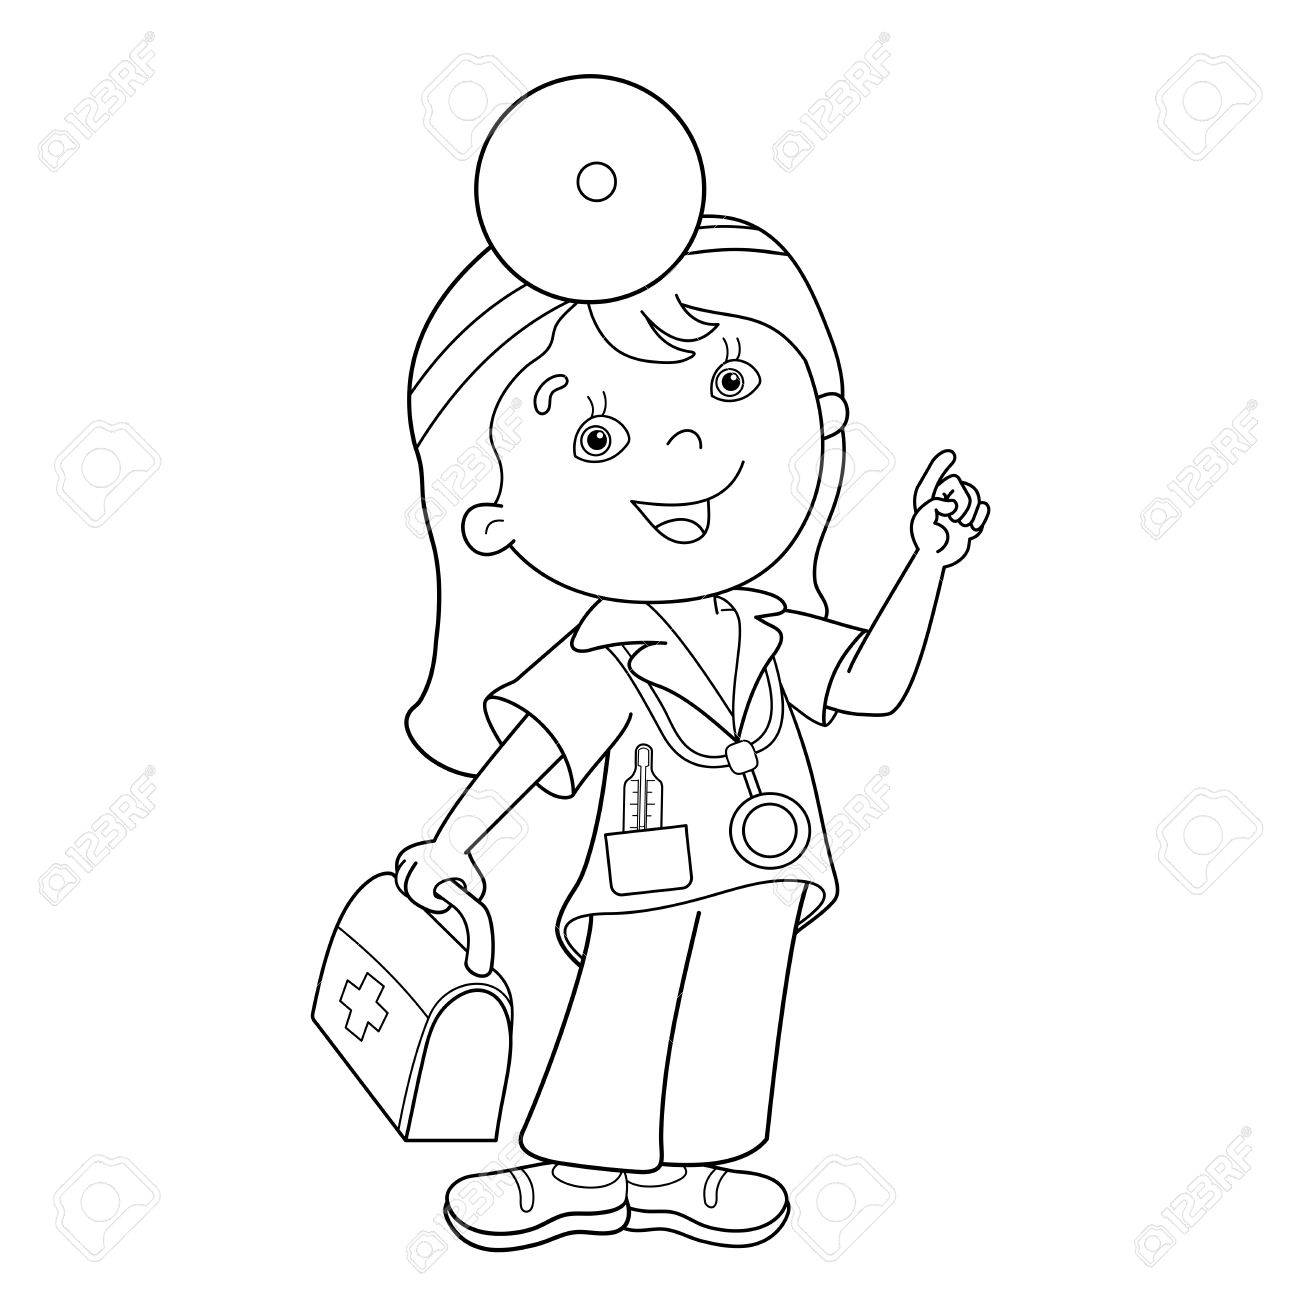 Coloring Book For Kids Page Outline Of Cartoon Doctor With First Aid Kit Profession Medicine